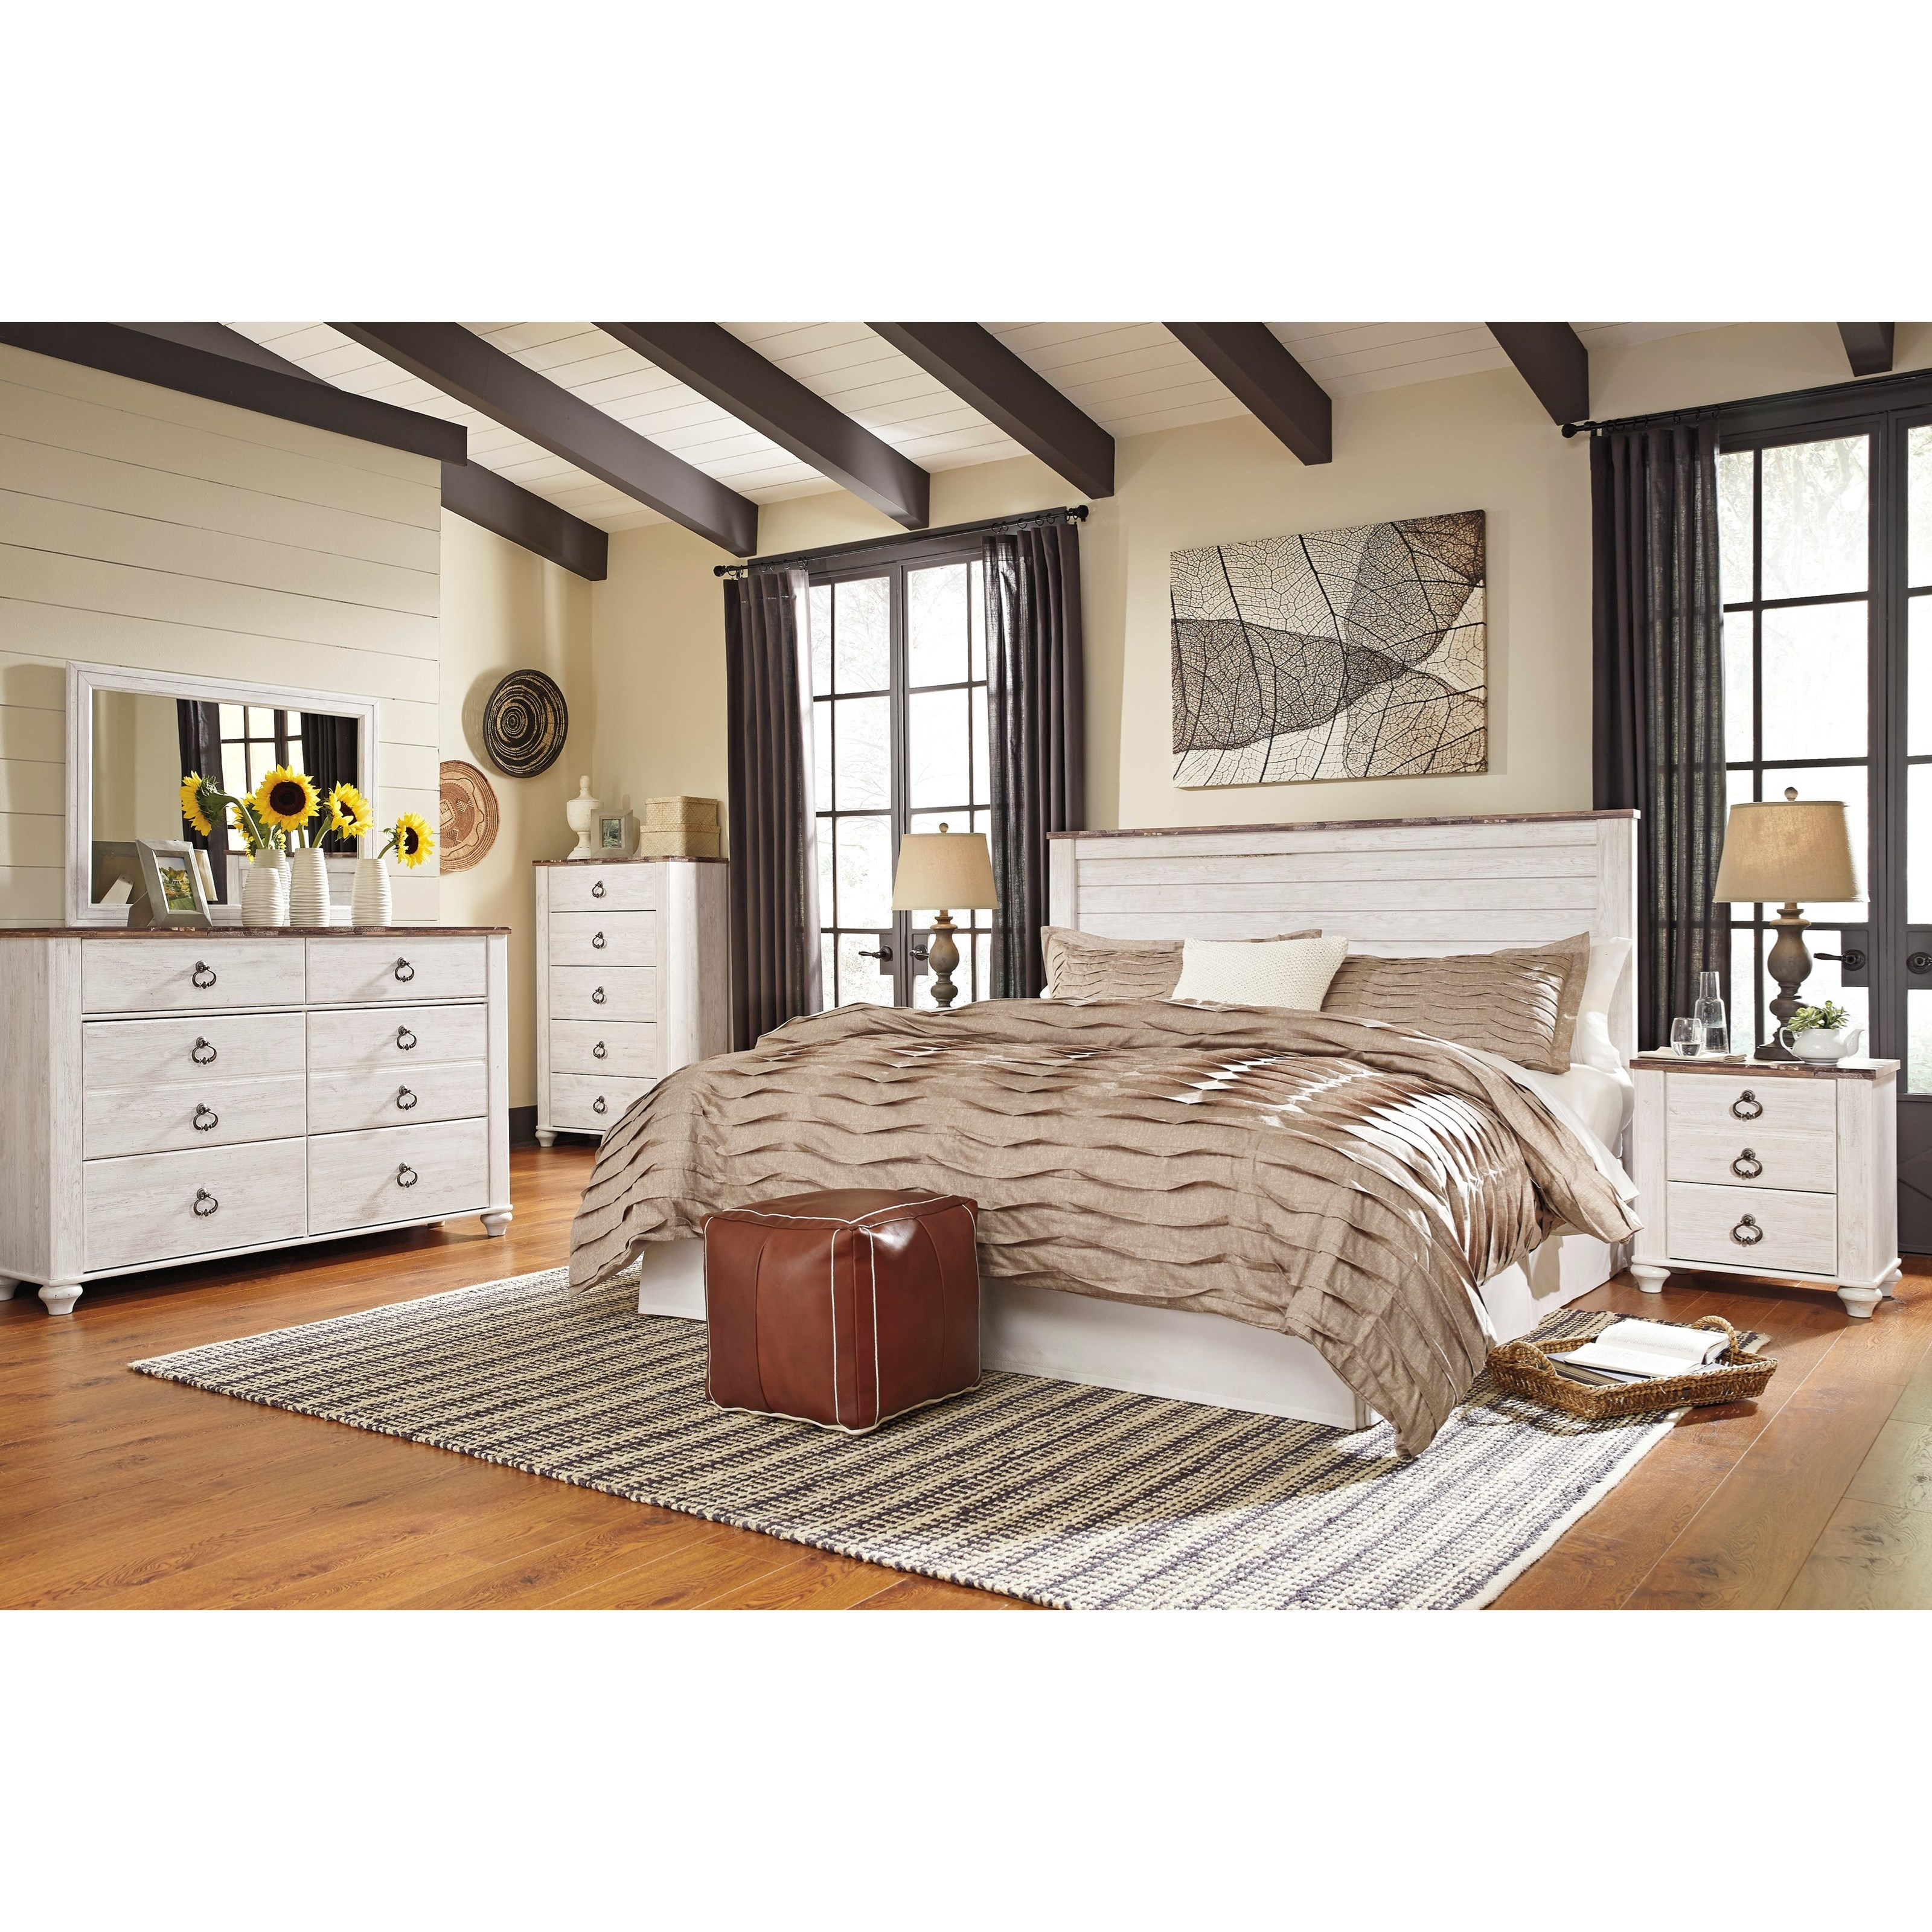 Willowton King/California King Bedroom Group by Signature Design by Ashley at Northeast Factory Direct